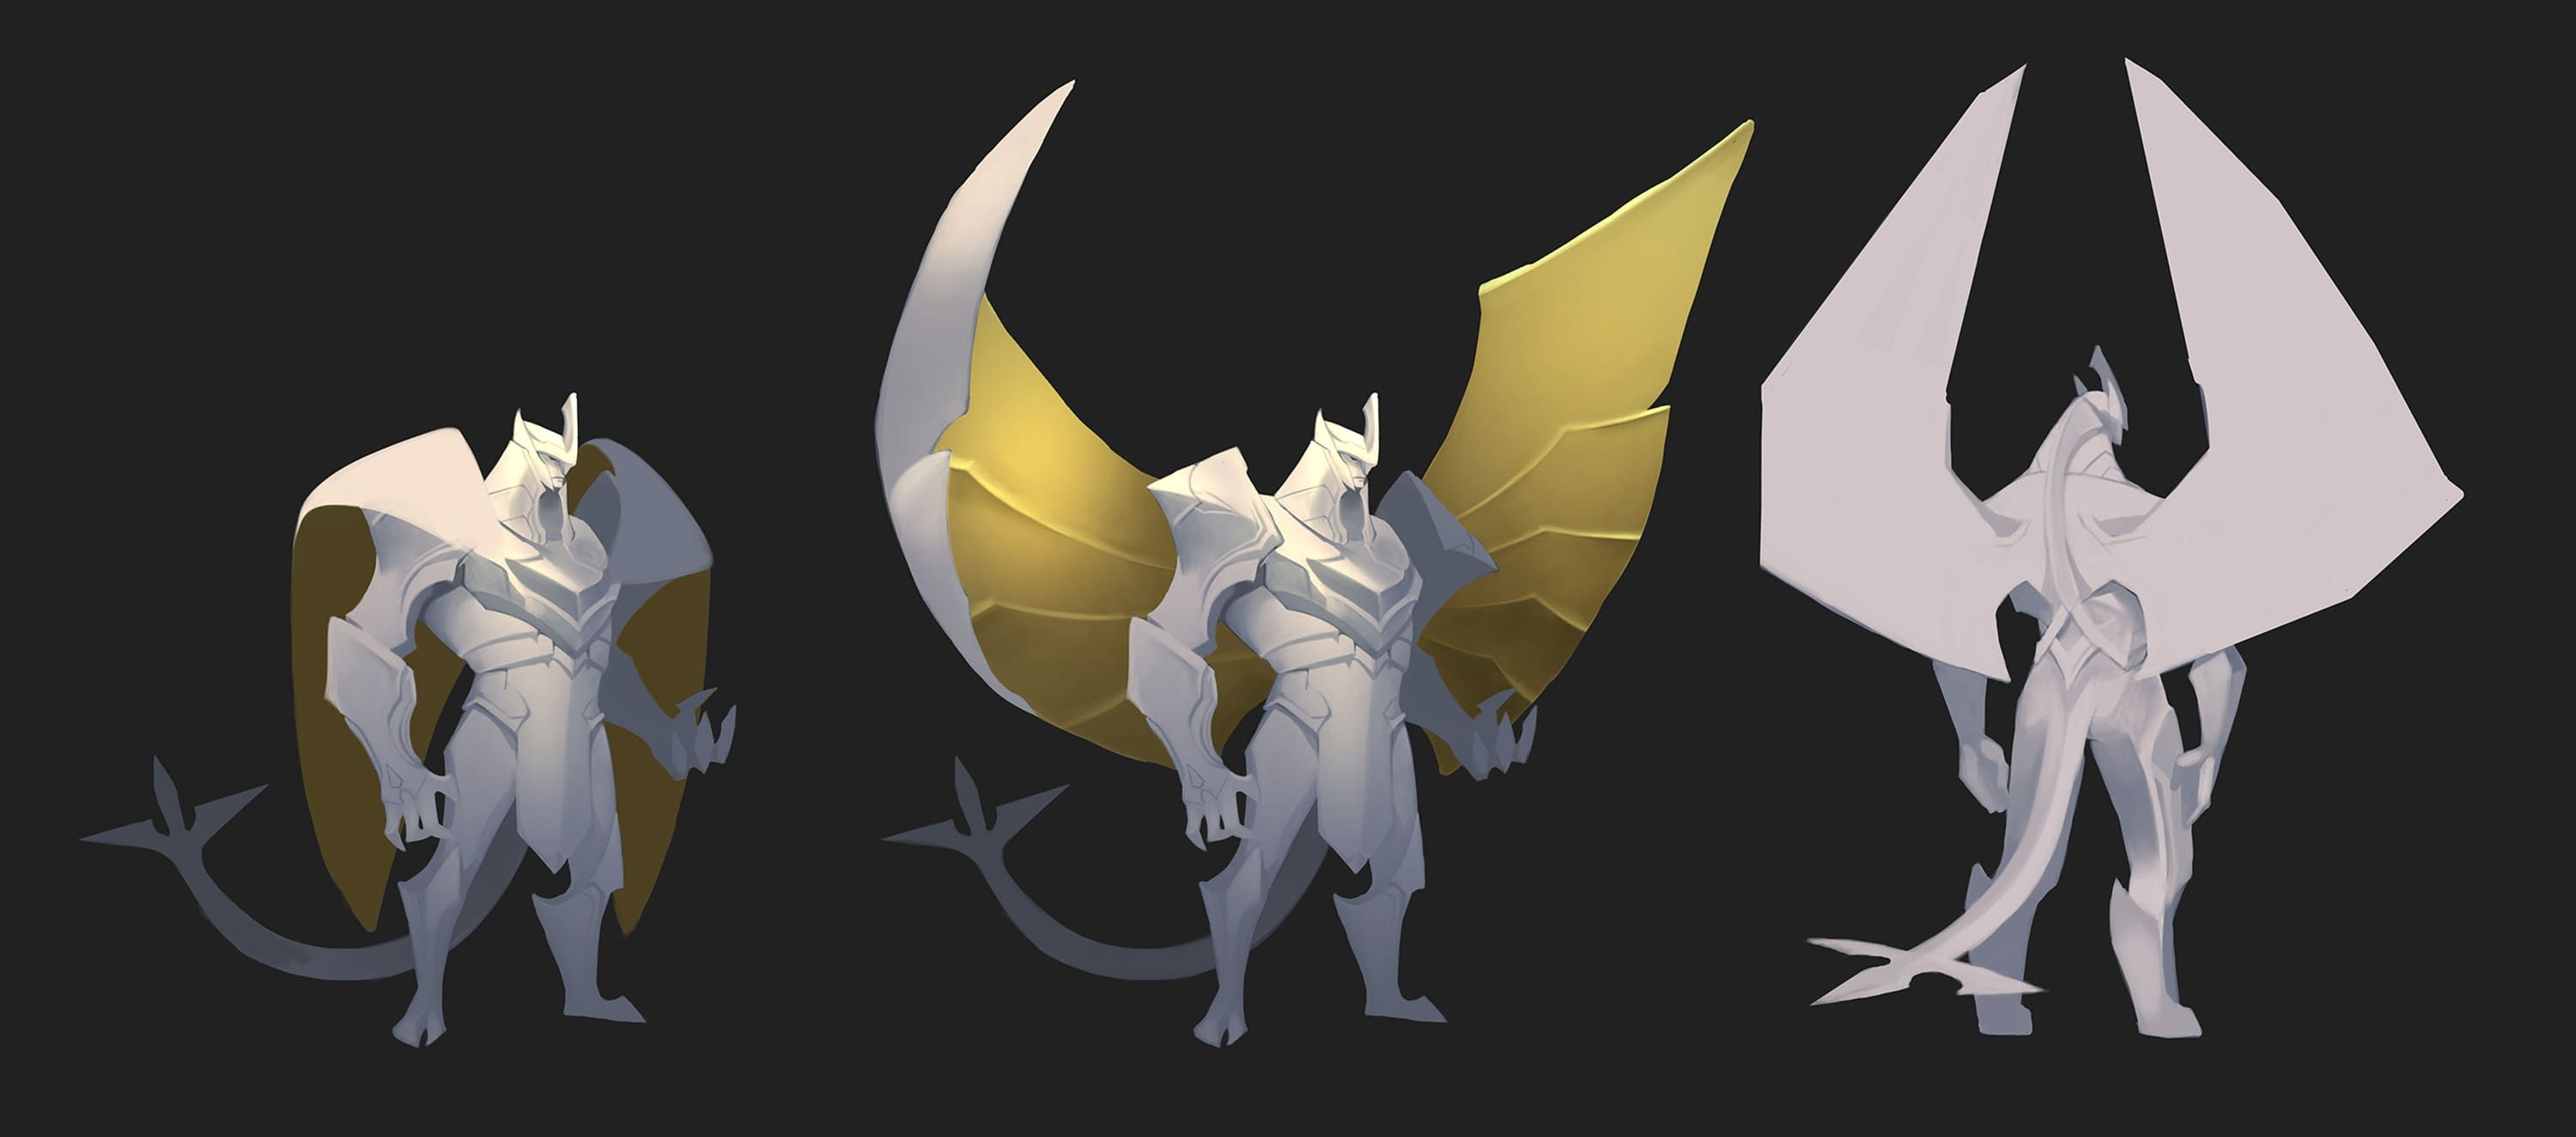 Champ Insights Galio The Colossus League Of Legends Characters League Of Legends Game Lol League Of Legends